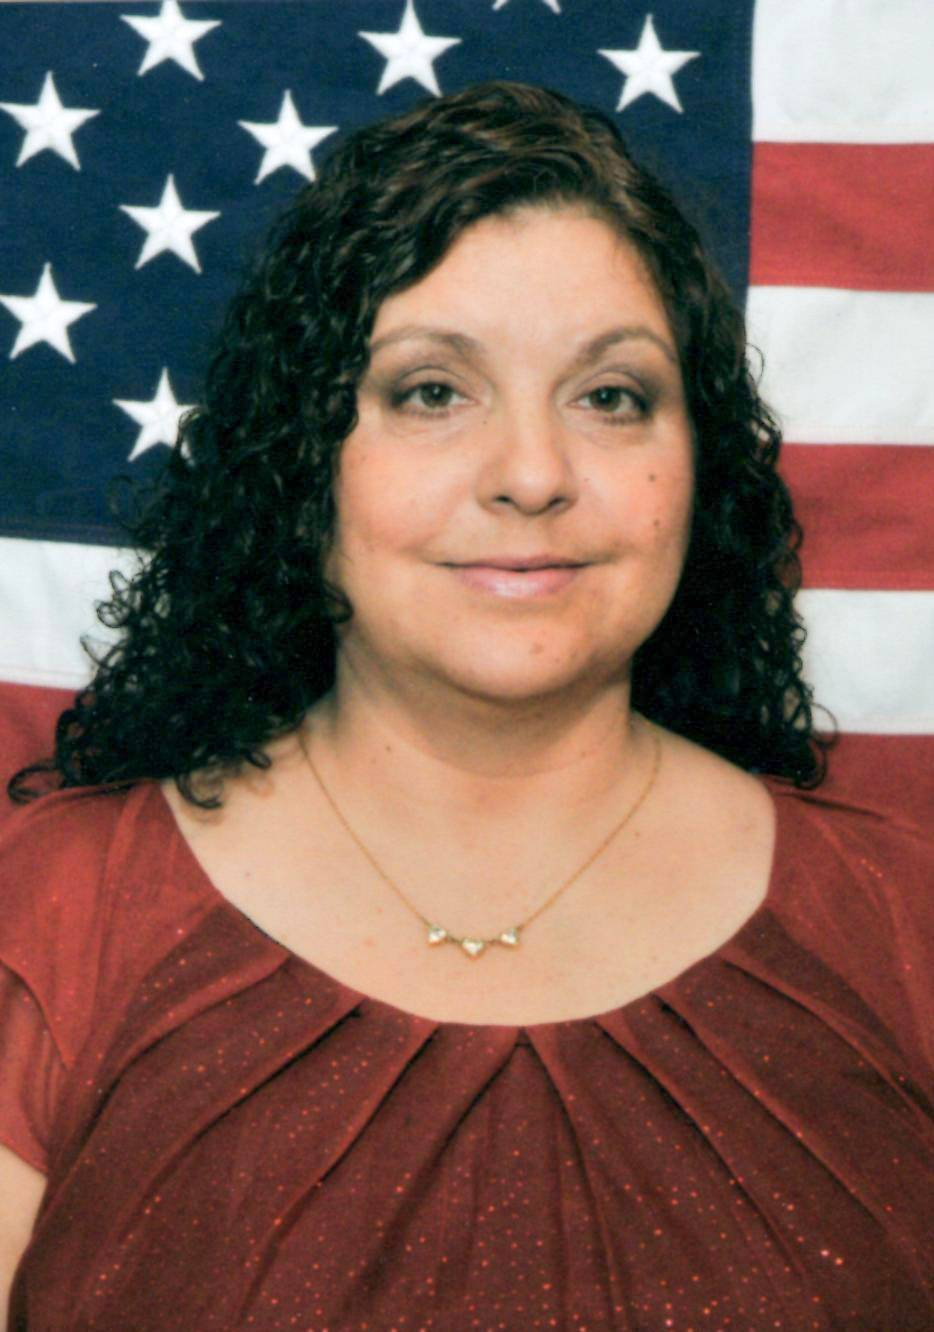 Deanne Theodore, running for Lombard Village Clerk (4-year Term)